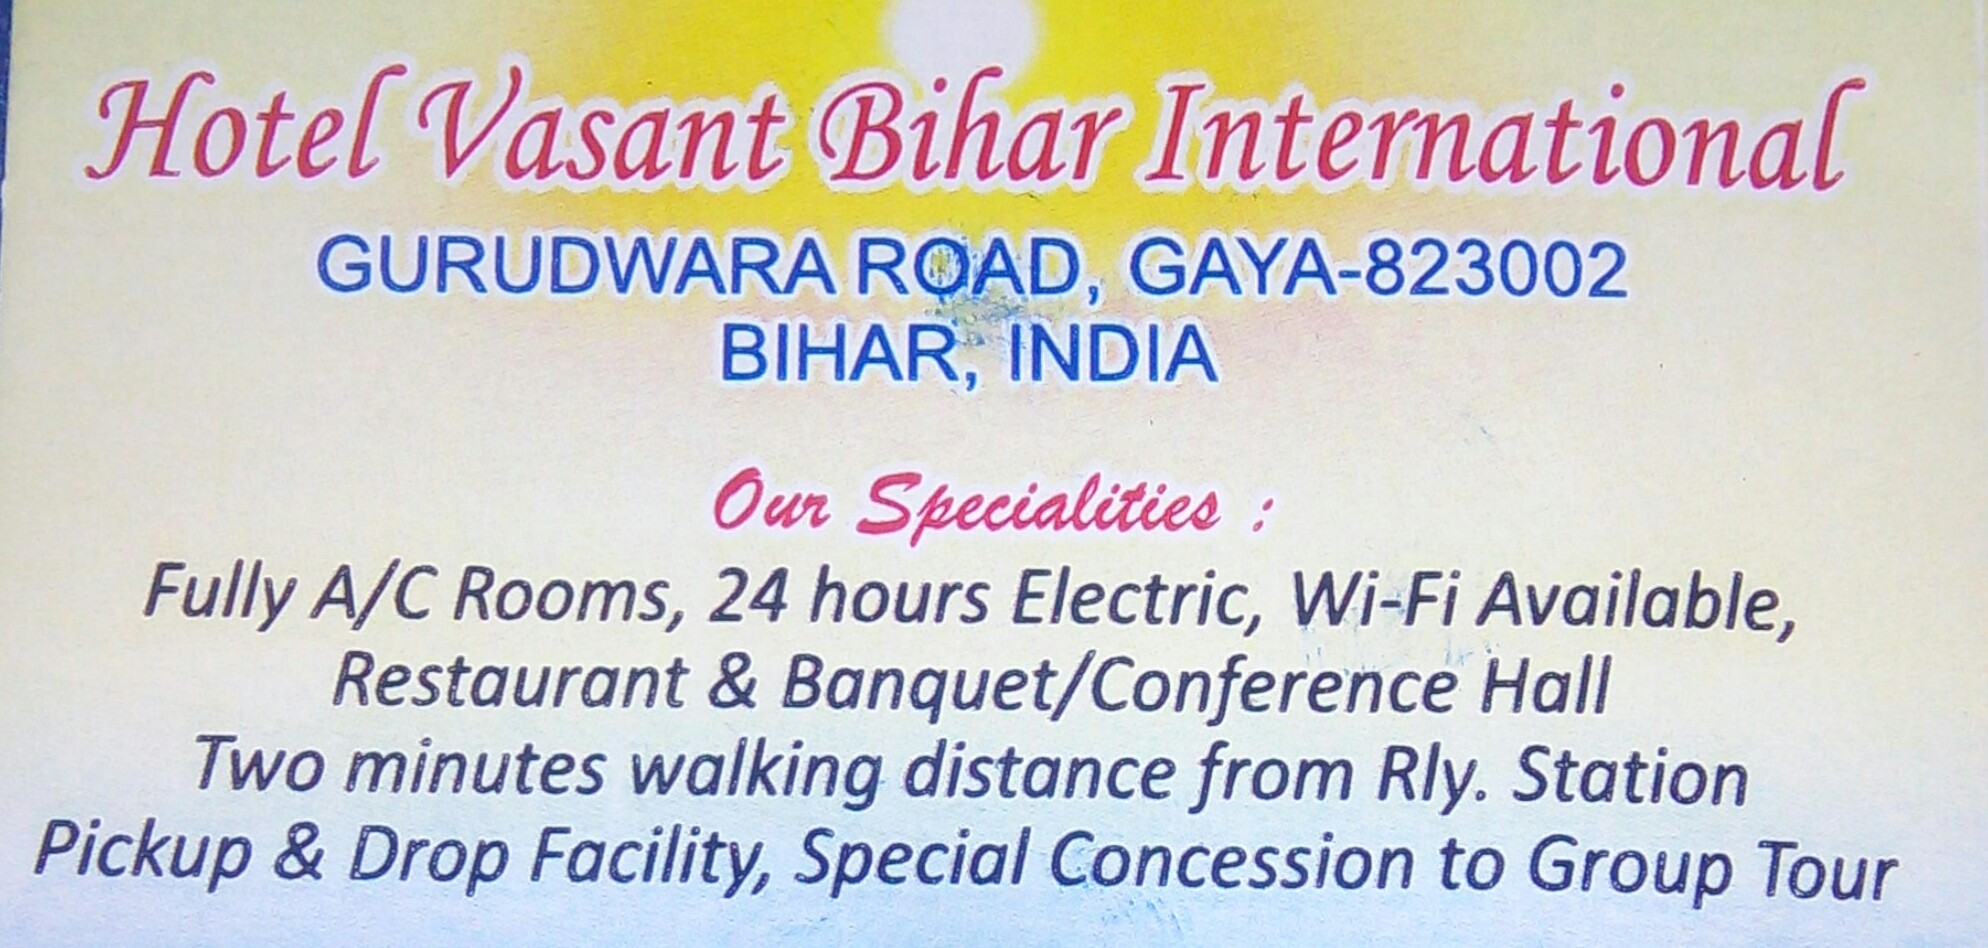 Hotel Vasant Bihar International